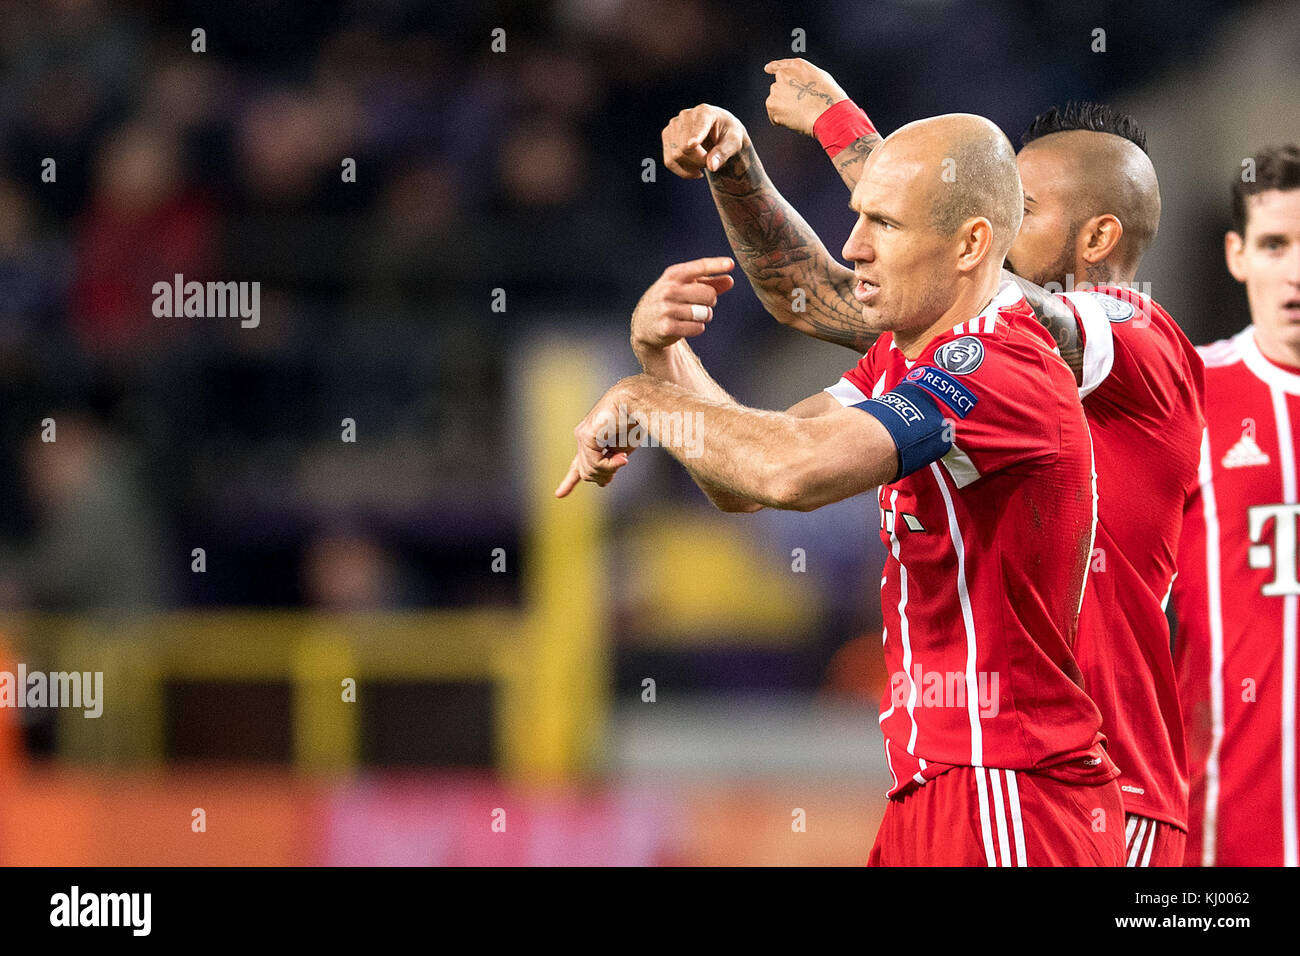 Munich's Arjen Robben indicates that he has to be exchanged during the Champions League soccer match between - Stock Image